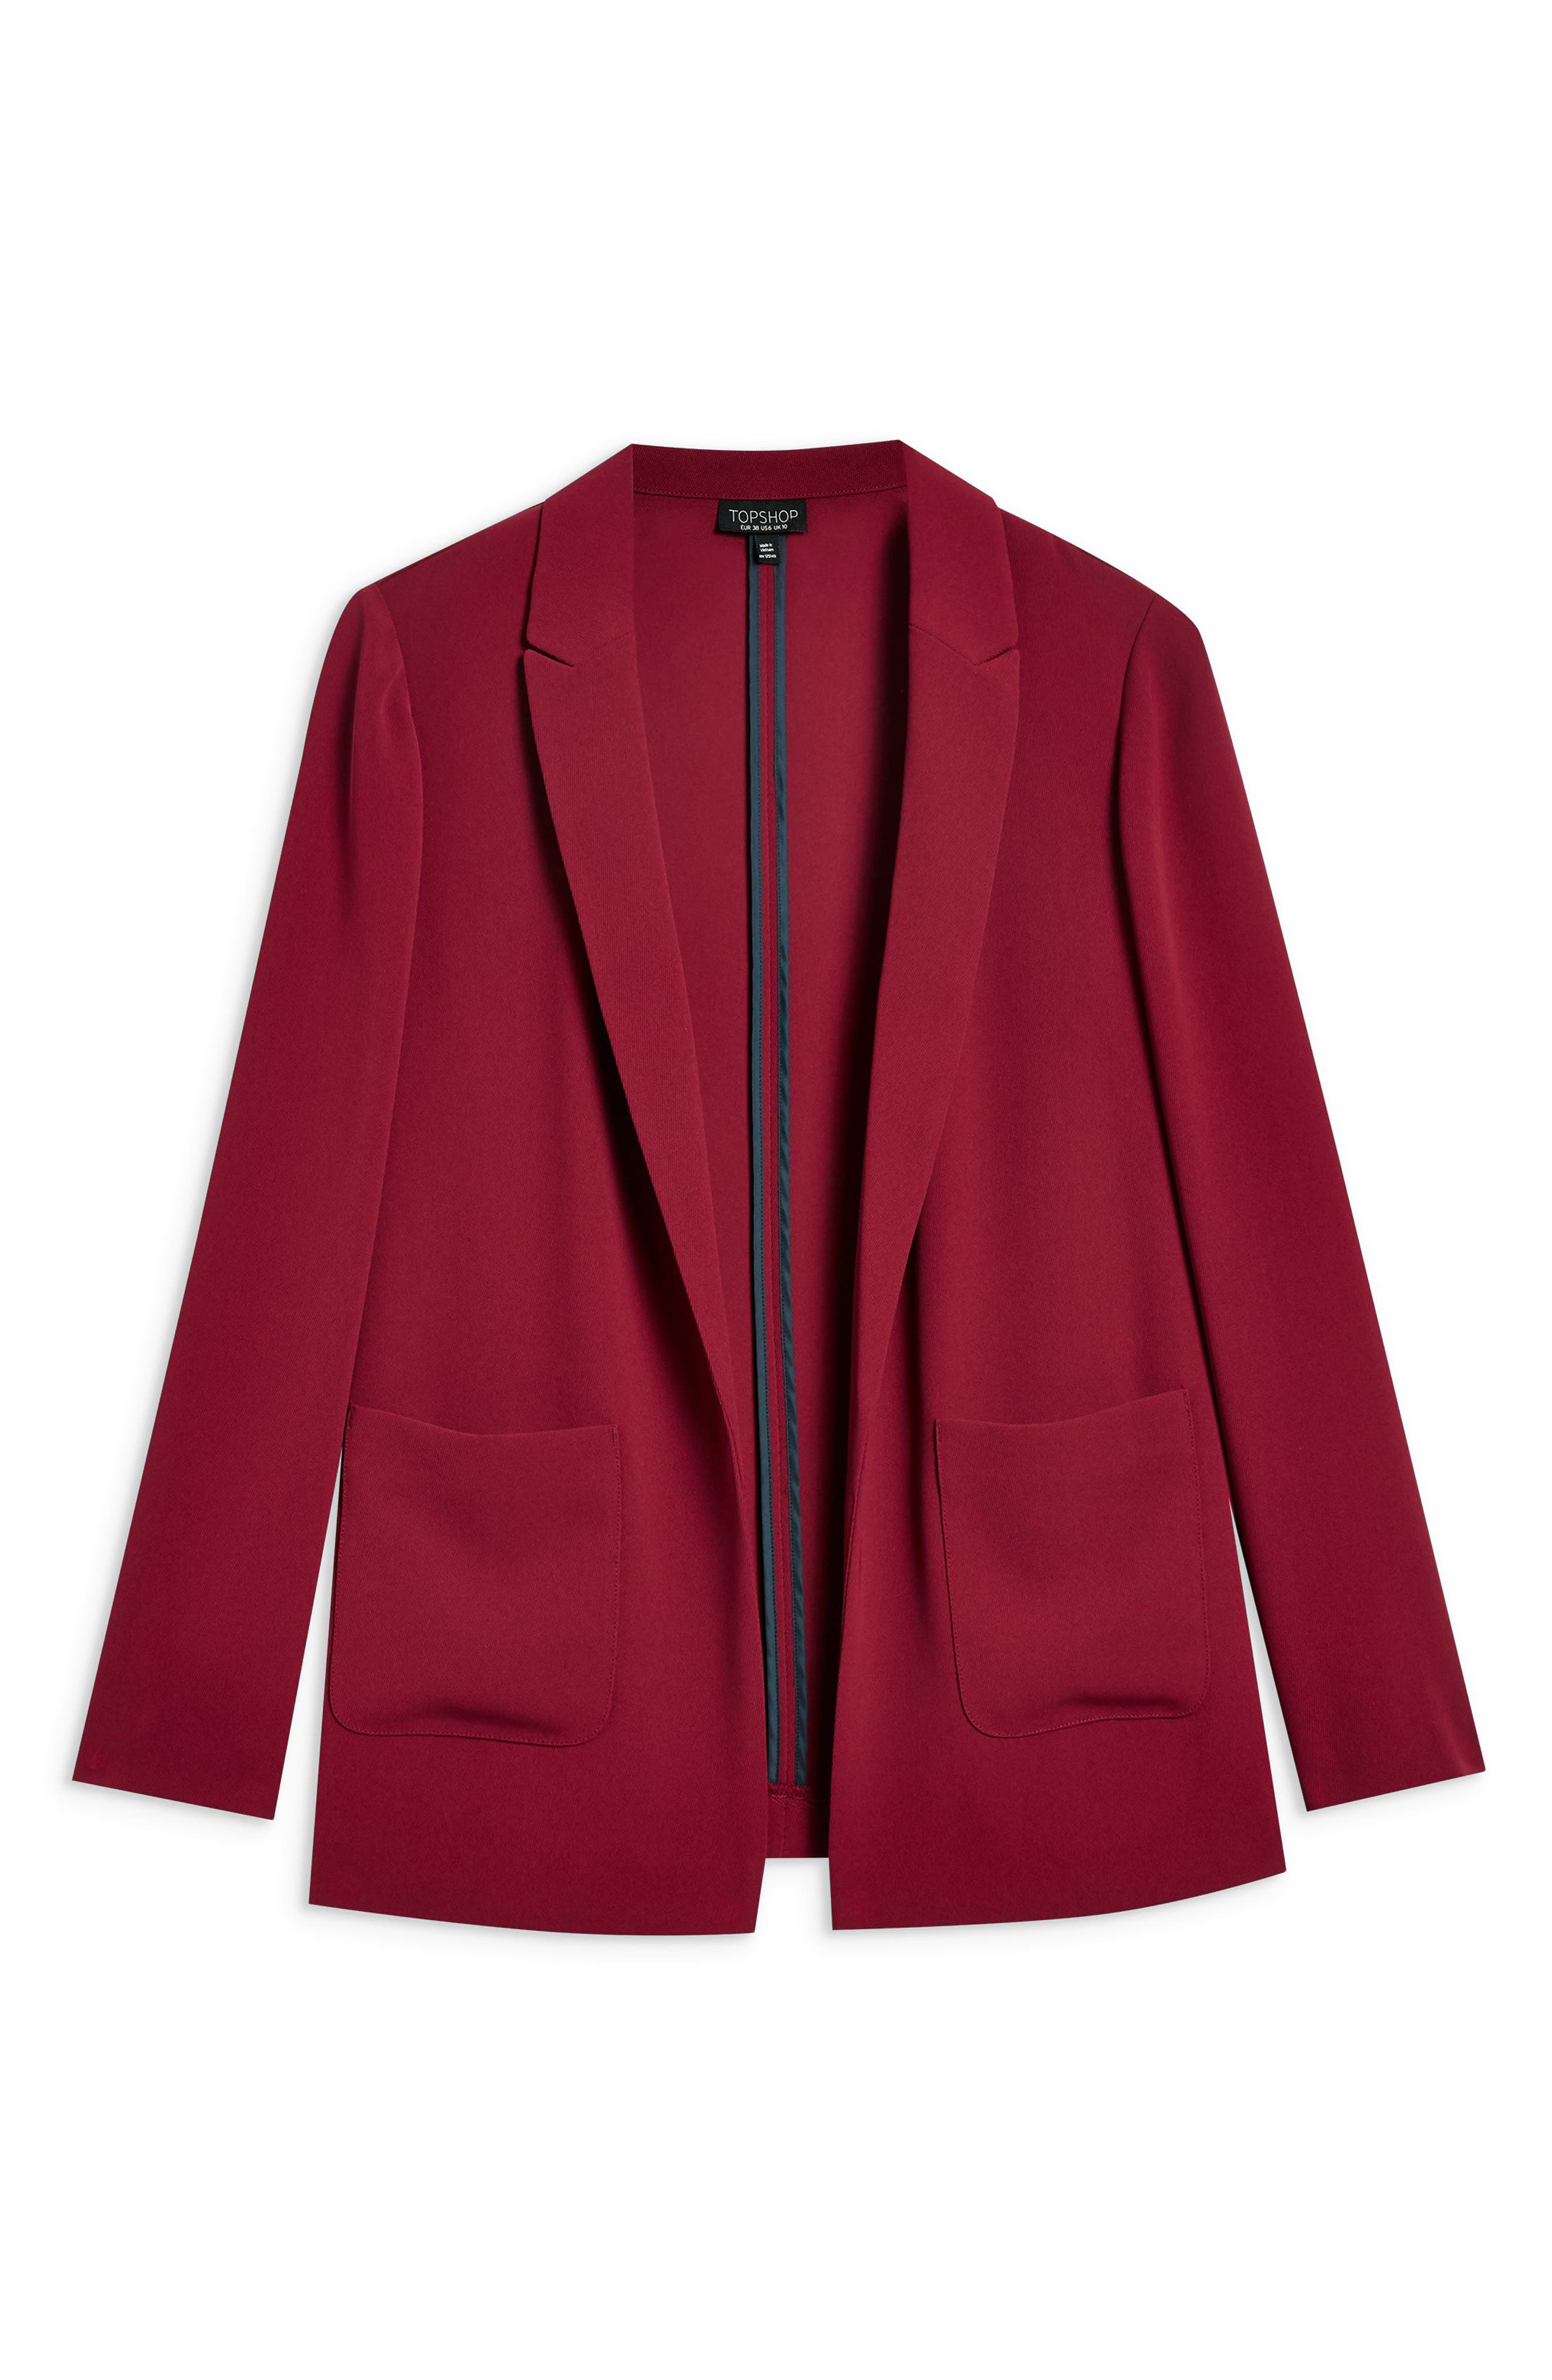 TOPSHOP, Chuck On Blazer, Alternate thumbnail 3, color, RED